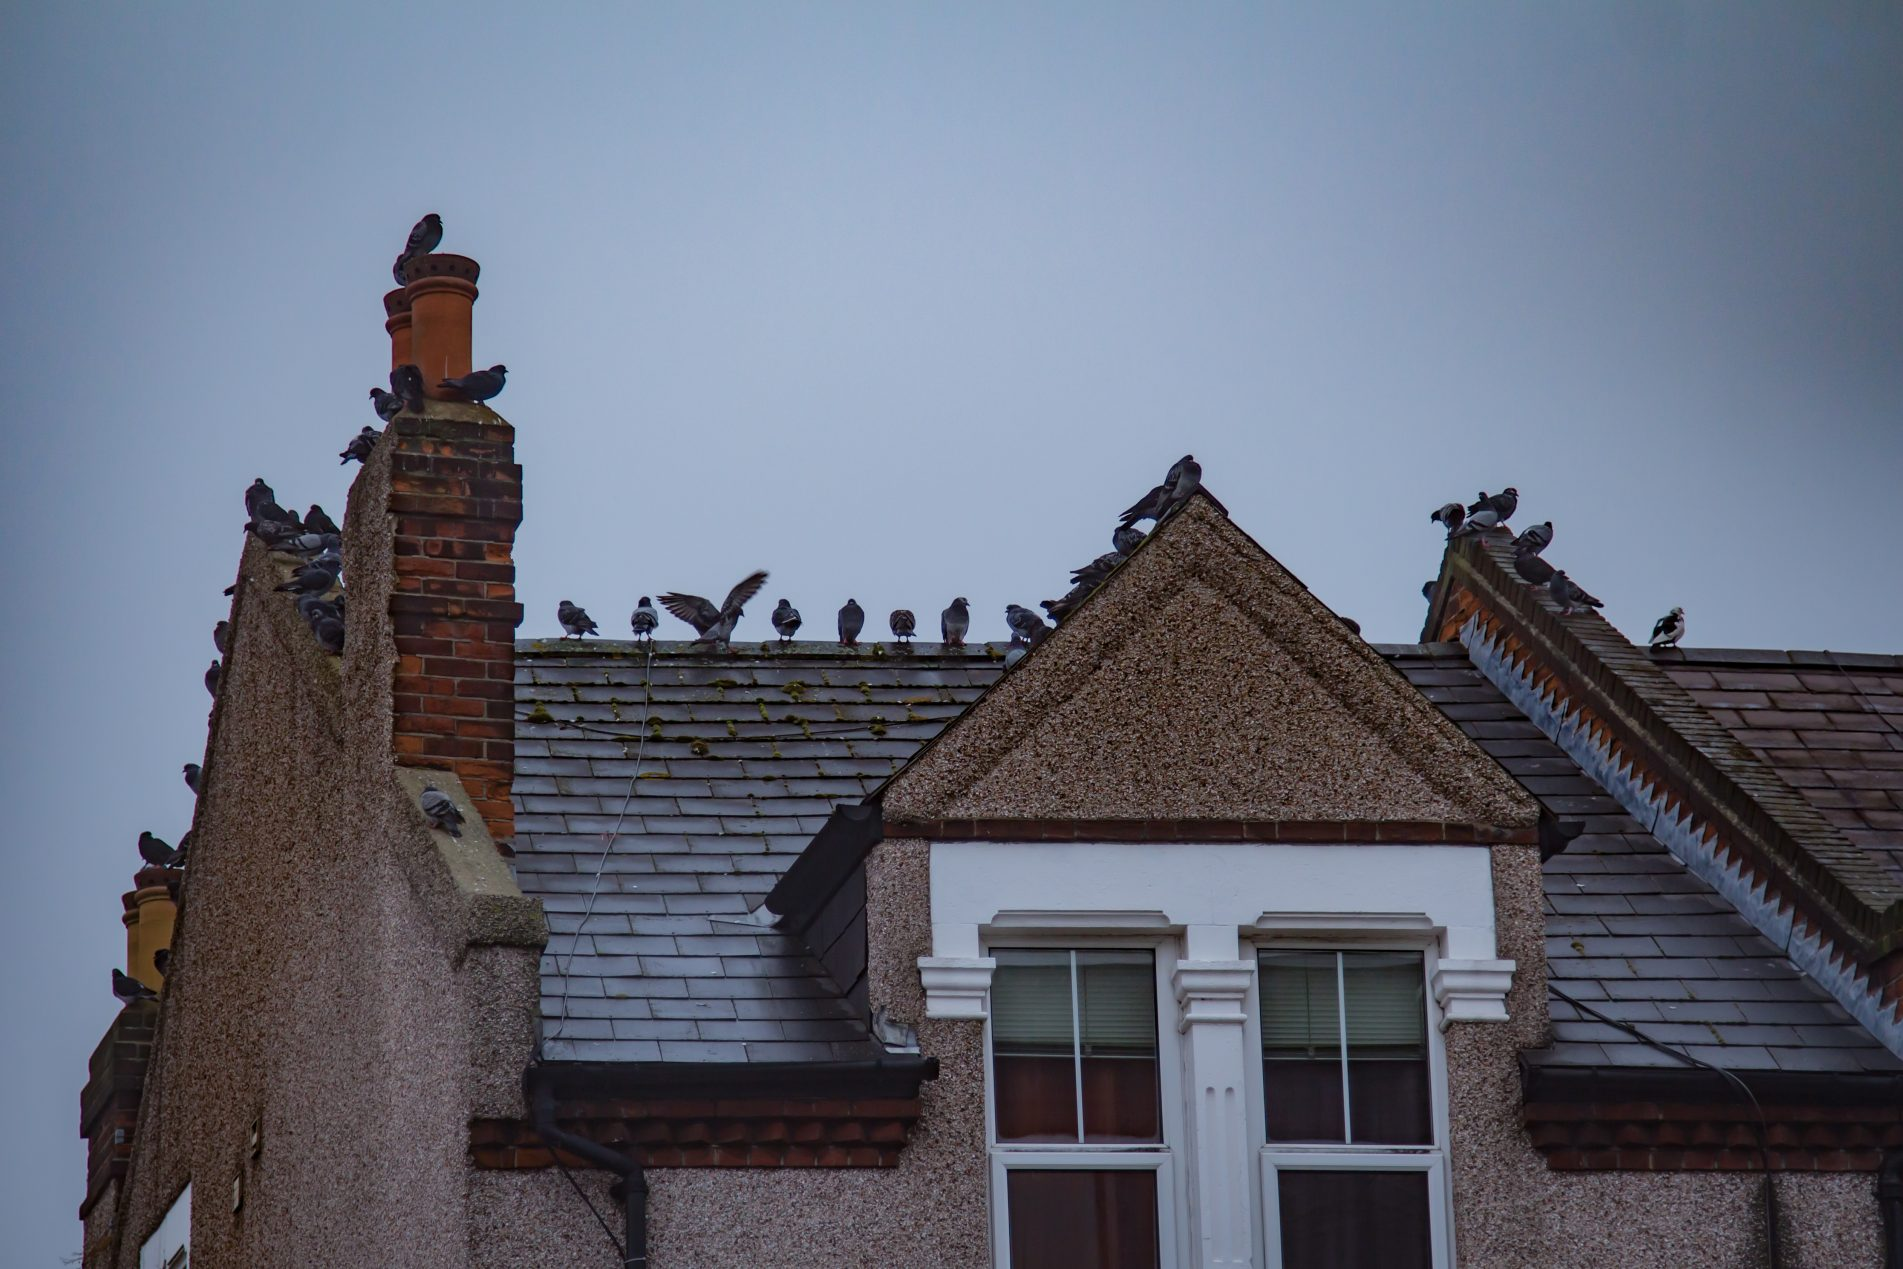 Pigeons on top of roof